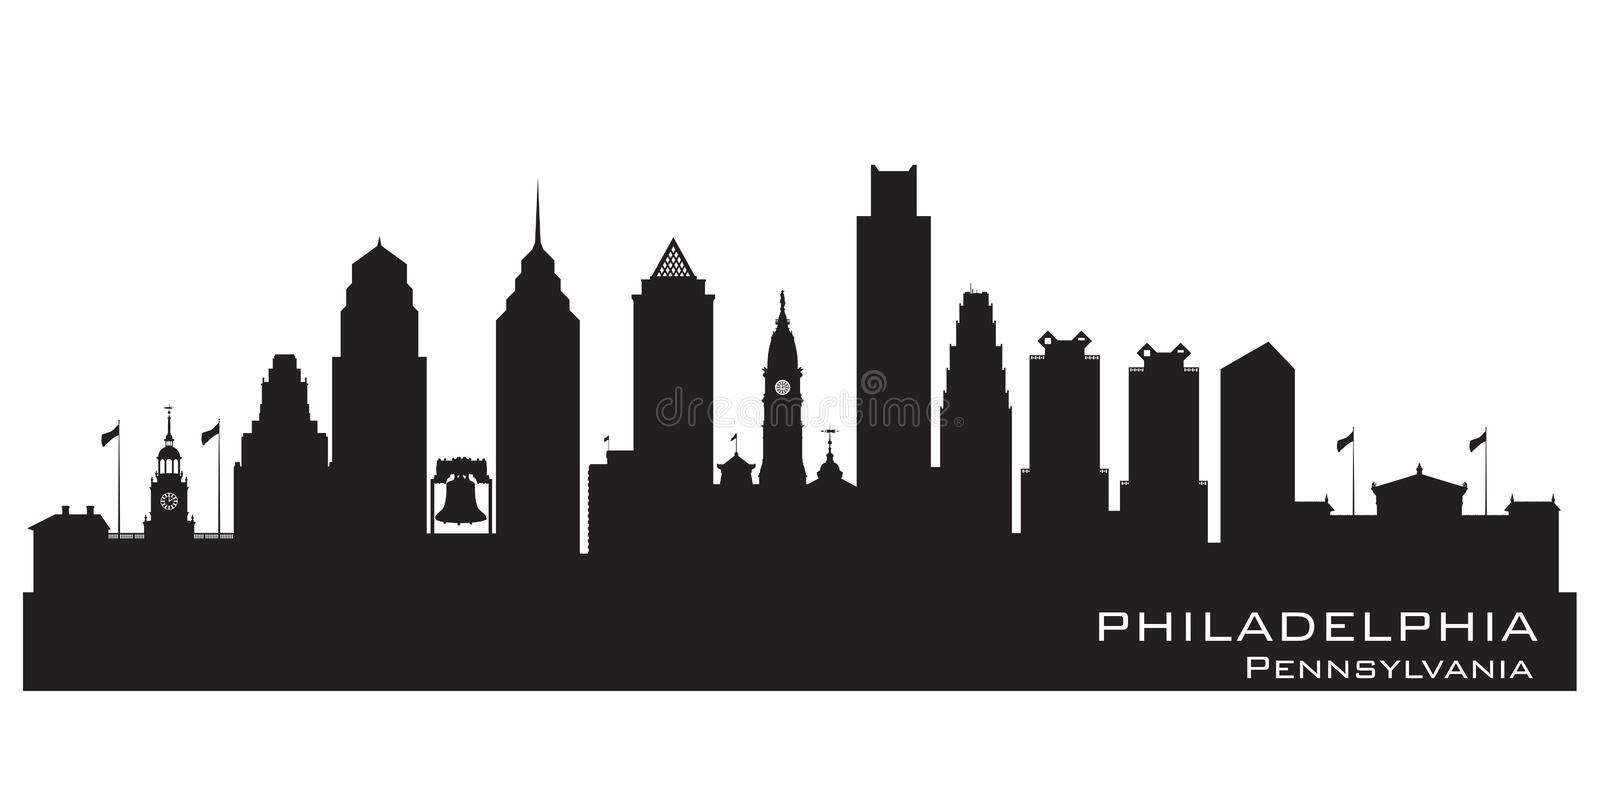 Philadelphia Pennsylvania city skyline vector silhouette stock illustration